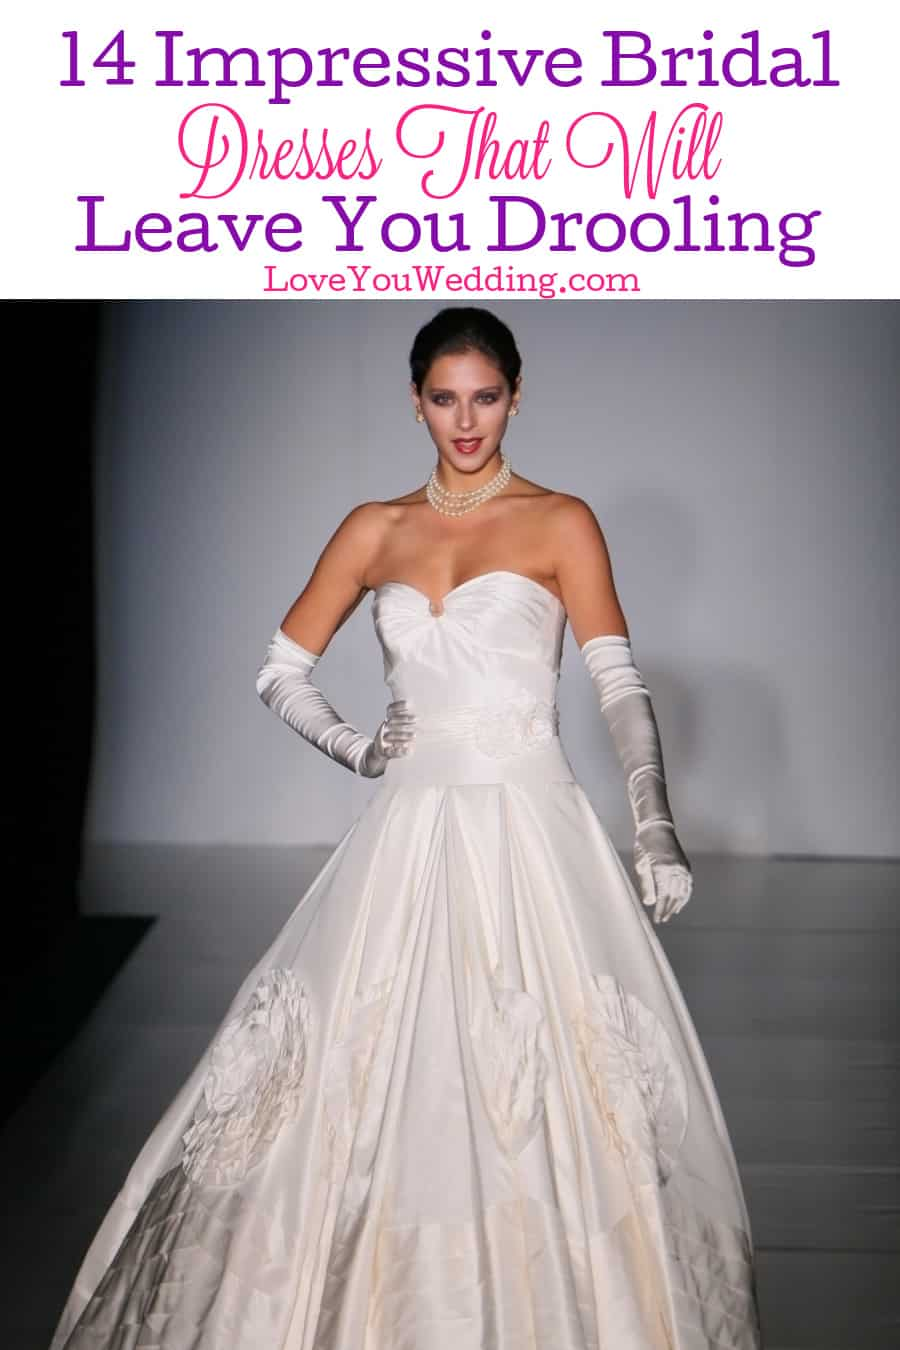 Looking for some truly impressive bridal dresses? If these 14 don't leave you absolutely drooling, I don't know what will! Check them out!